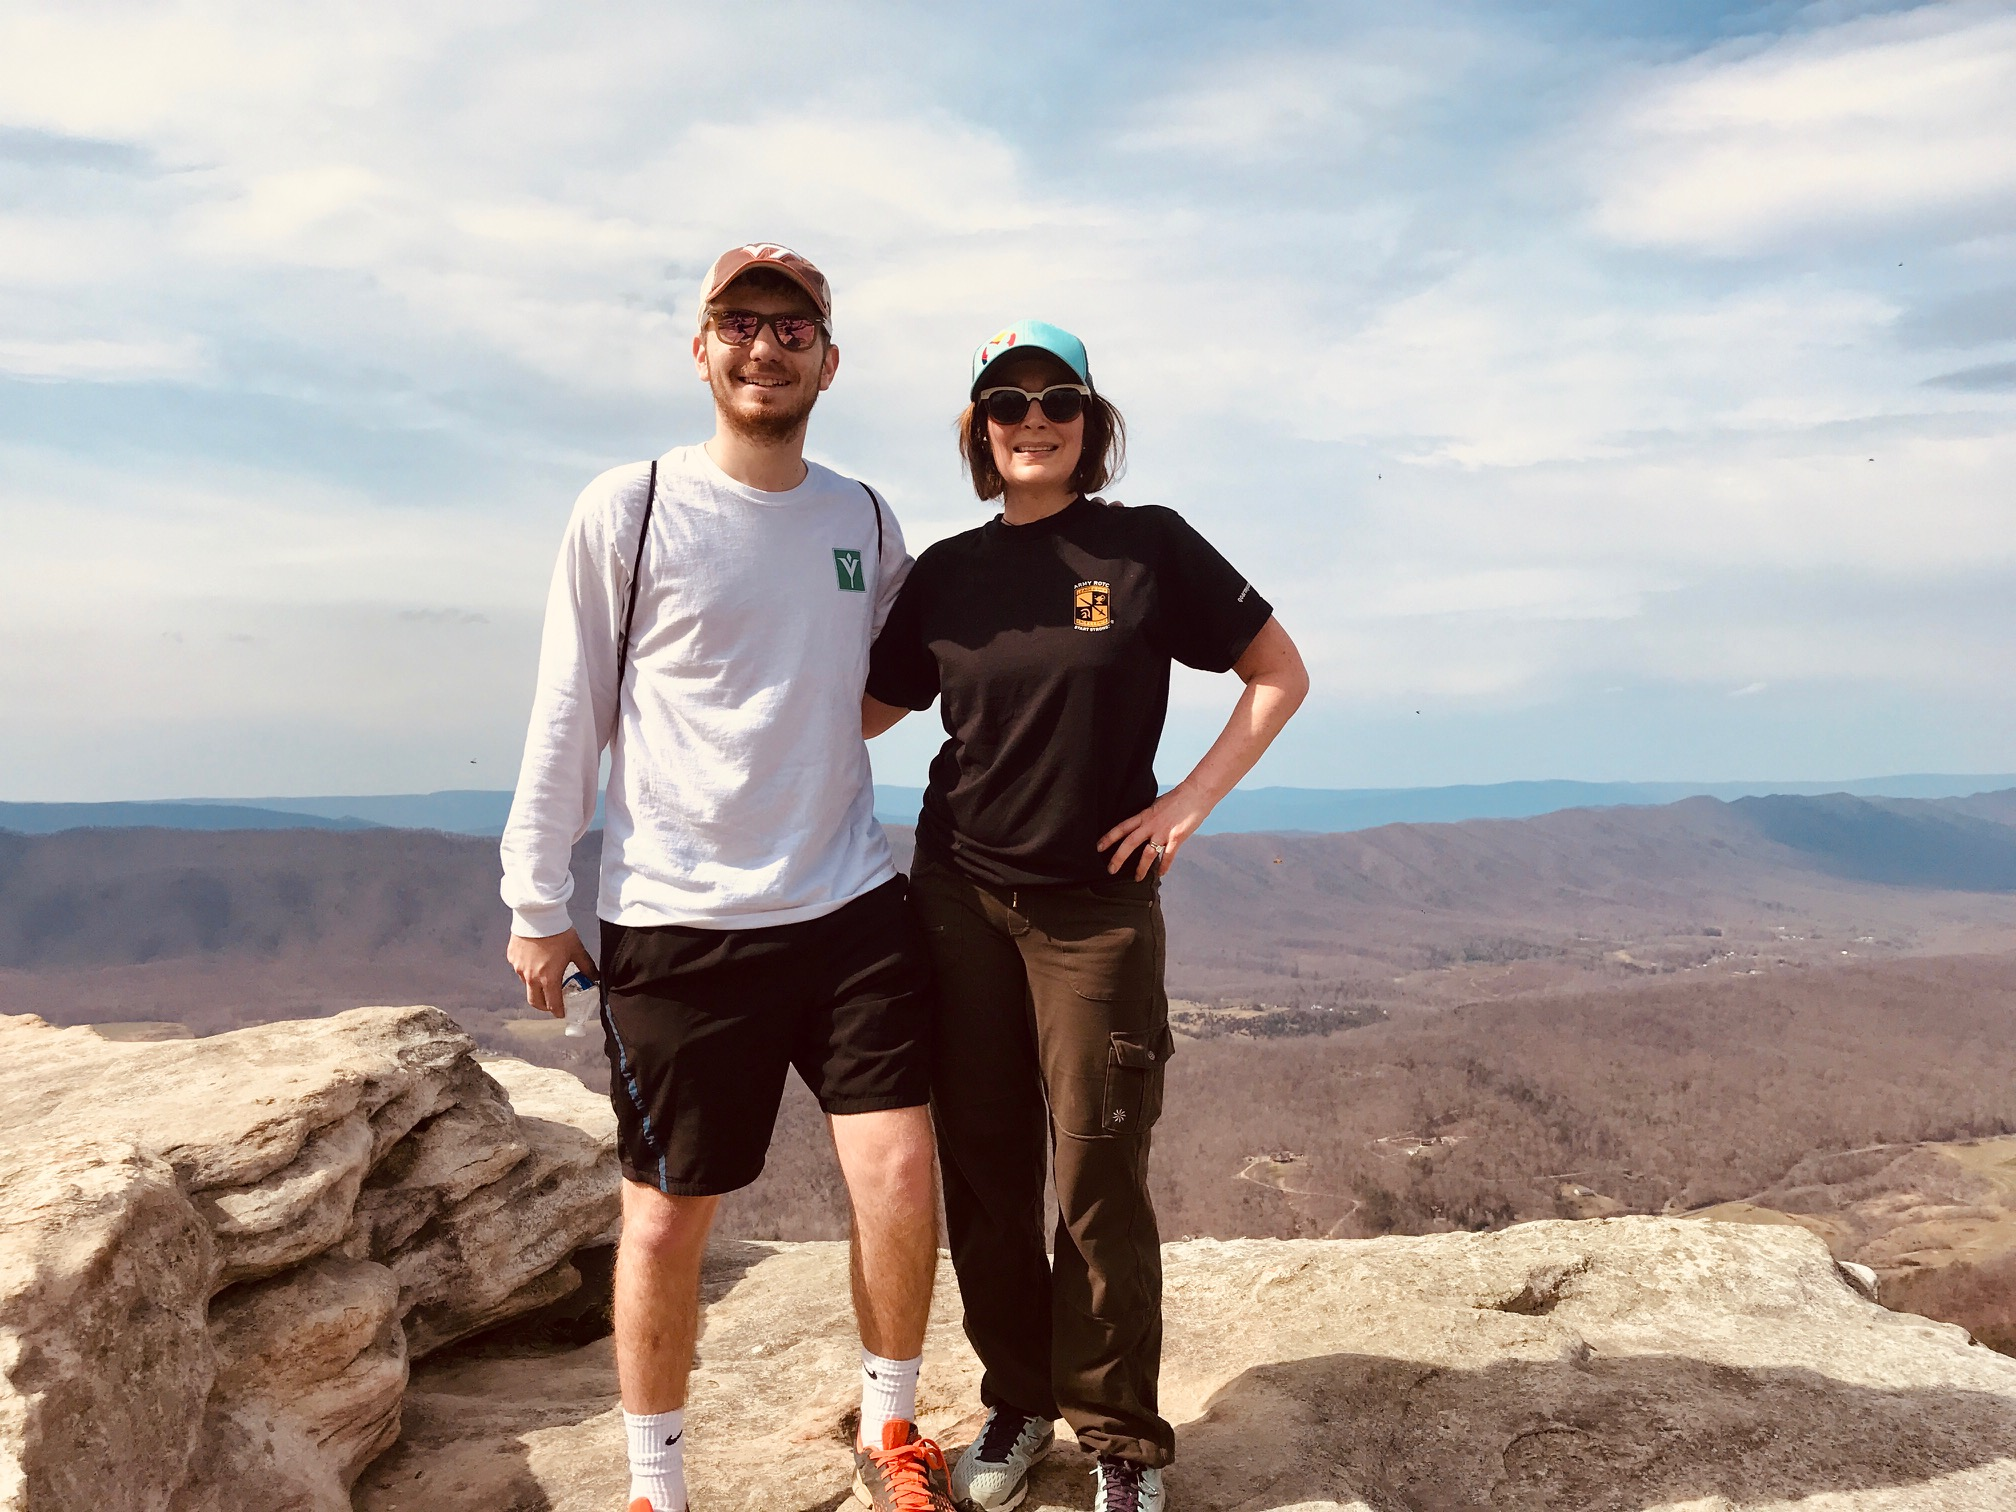 harry and ms hiking.jpg